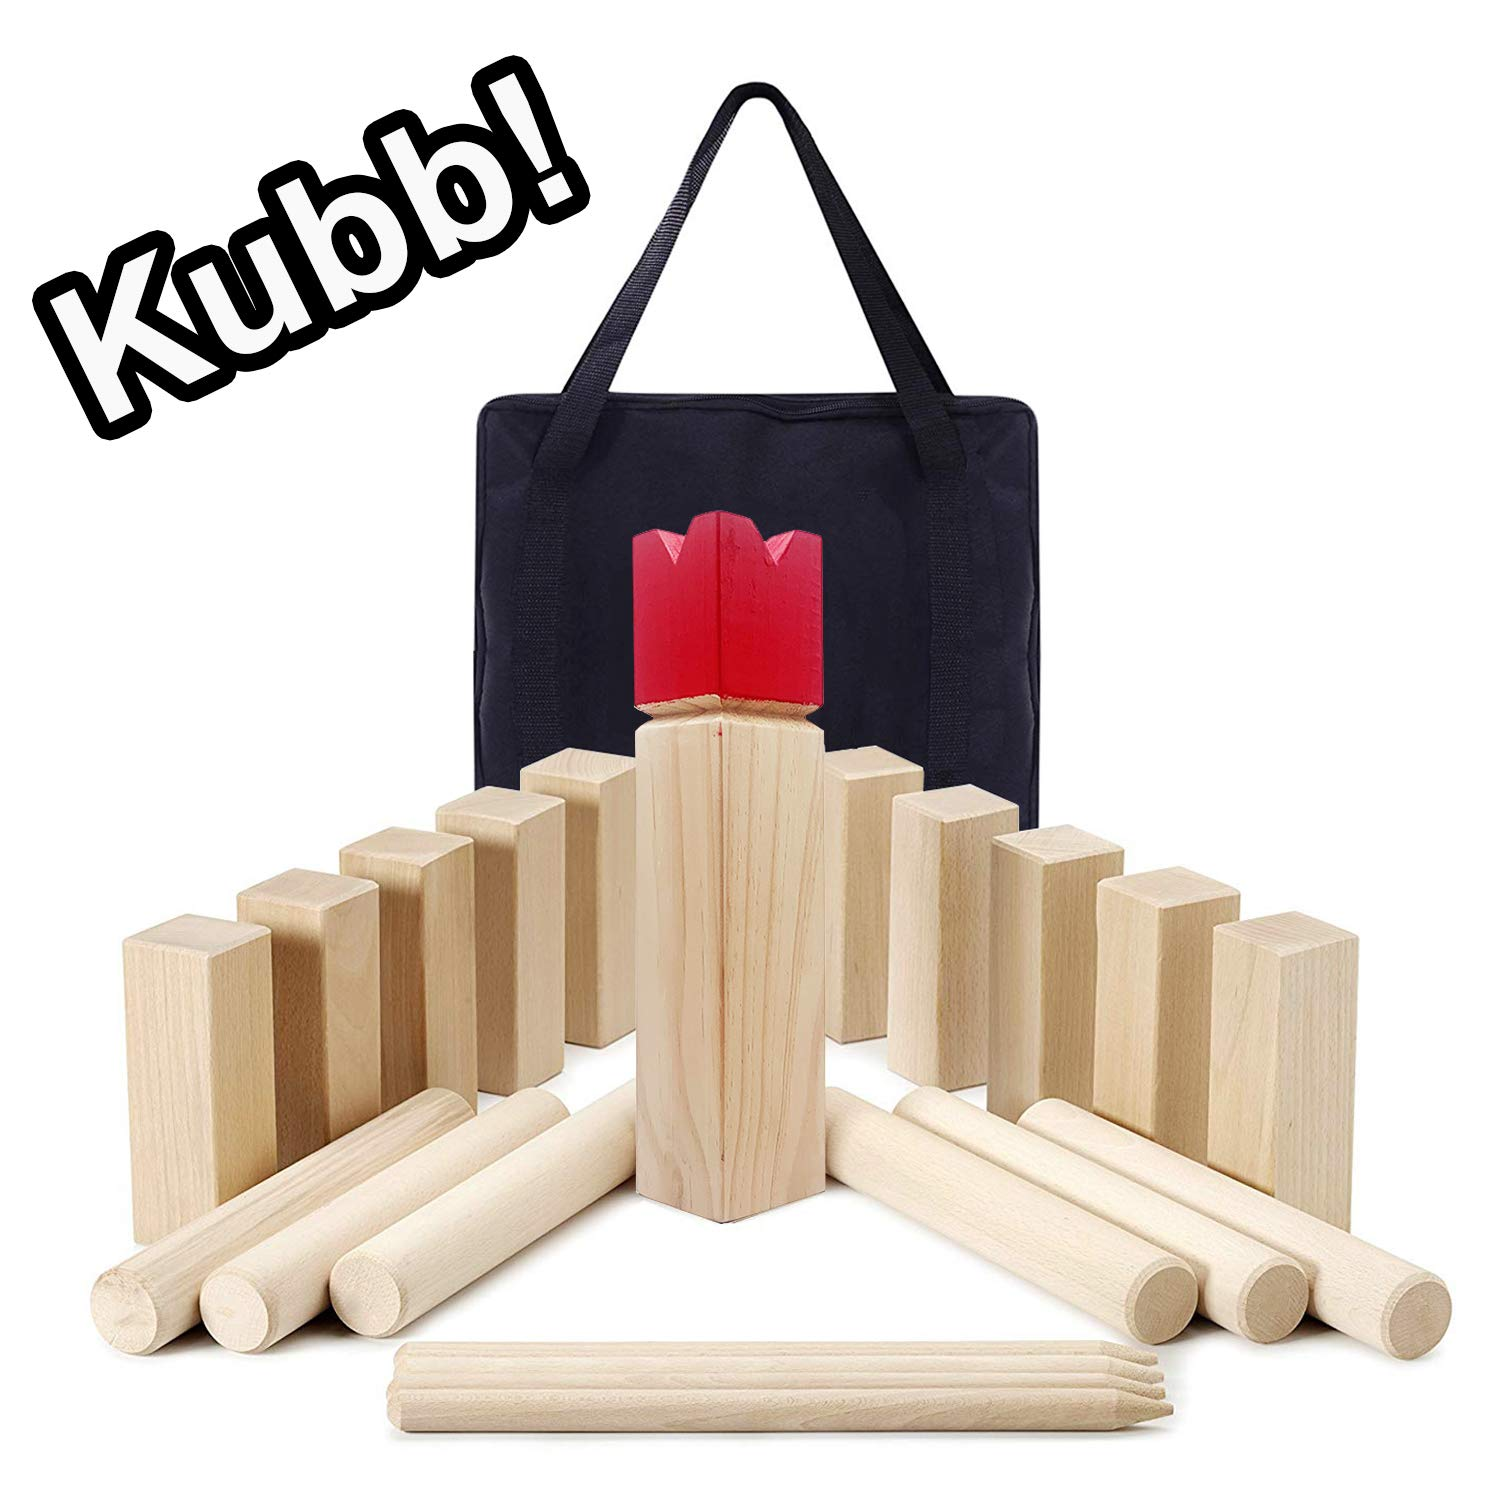 Reliancer Kubb Game Set Wooden Outdoor Lawn Game w/Storage Bag Backyard Tossing Grass Game Hardwood Kubb Party Team Game Swedish Viking Chess Beach Strategic Kubb Family Games for Yard Wedding BBQs